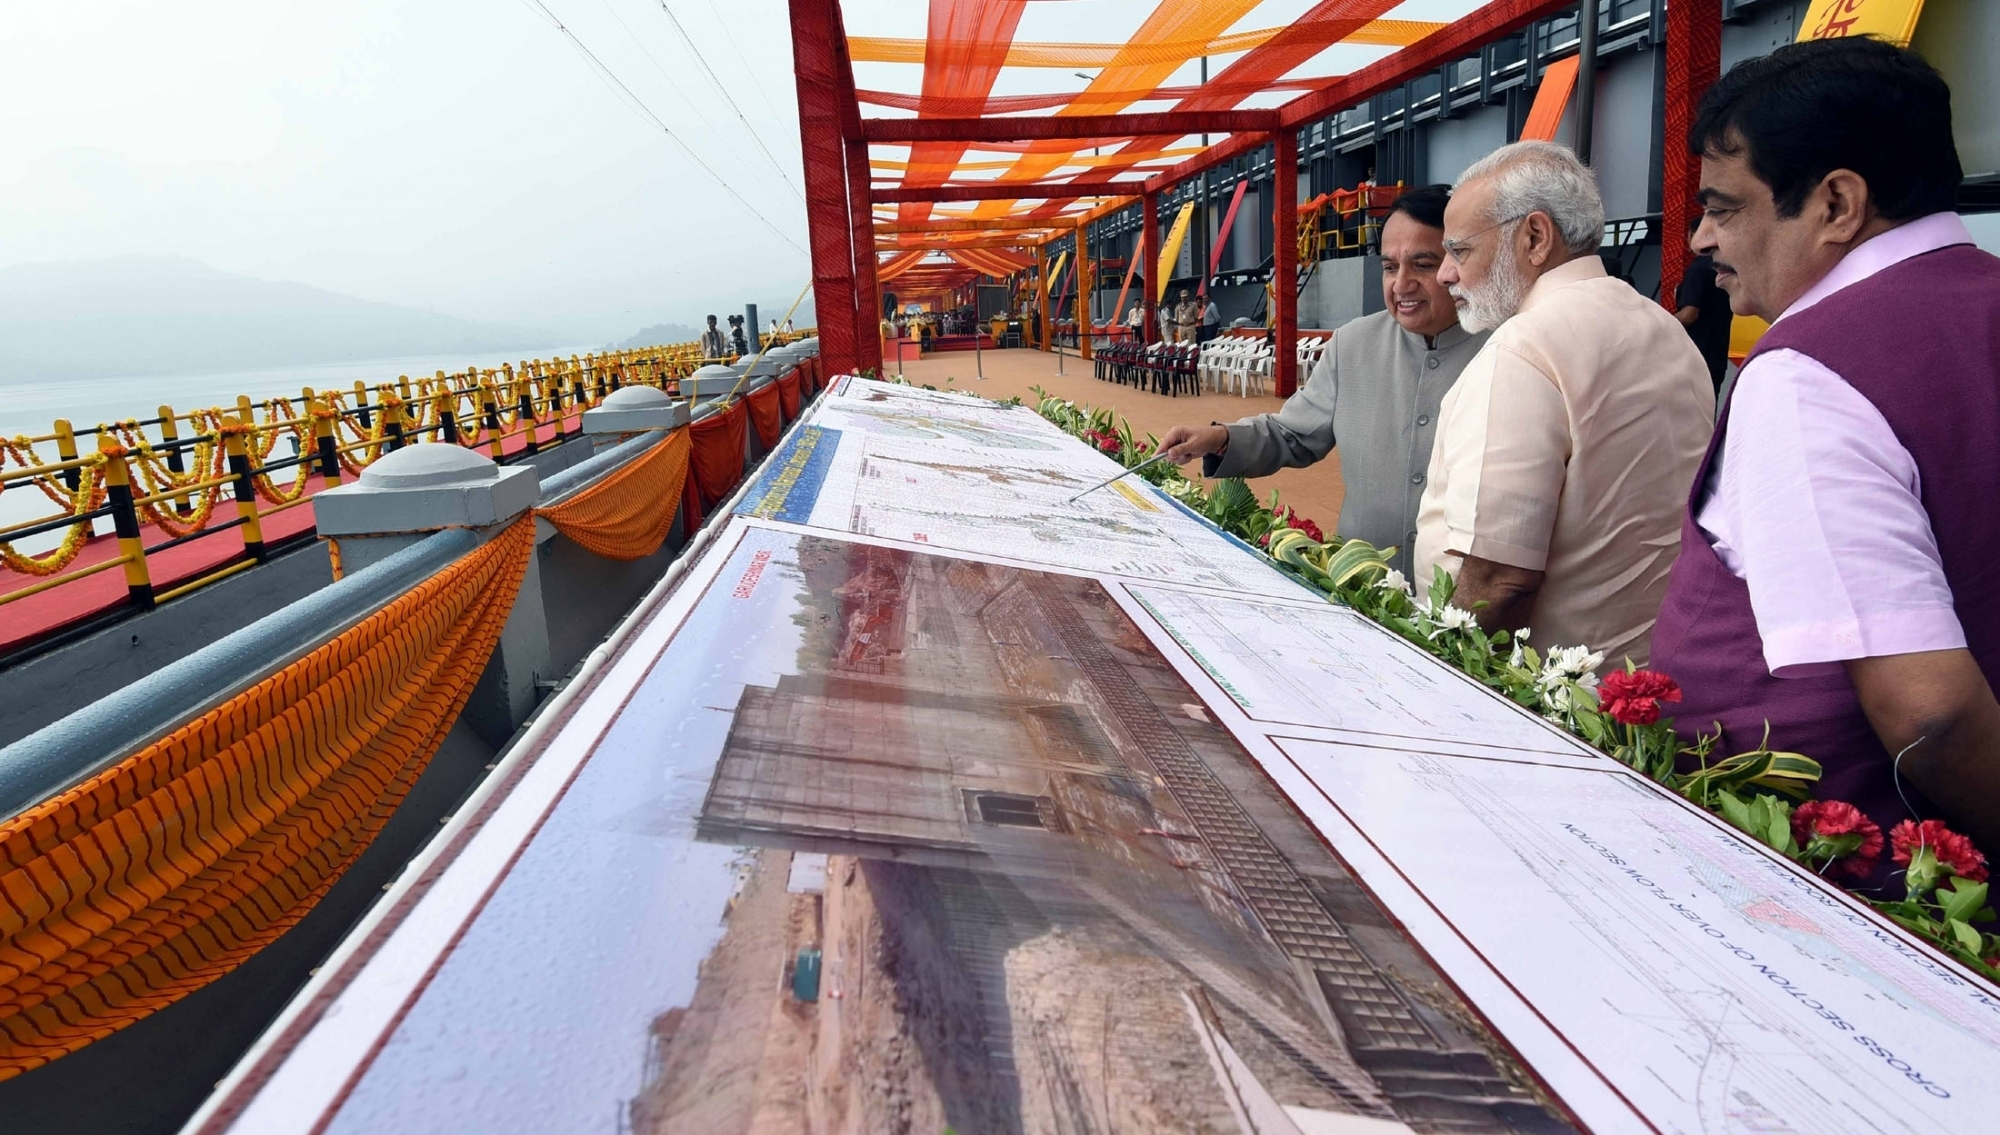 Narendra Modi inaugurated the Sardar Sarovar dam on the Narmada river, in September 2017. Jawaharlal Nehru laid the foundation stone of this project in 1961. (Photo credit: IANS).